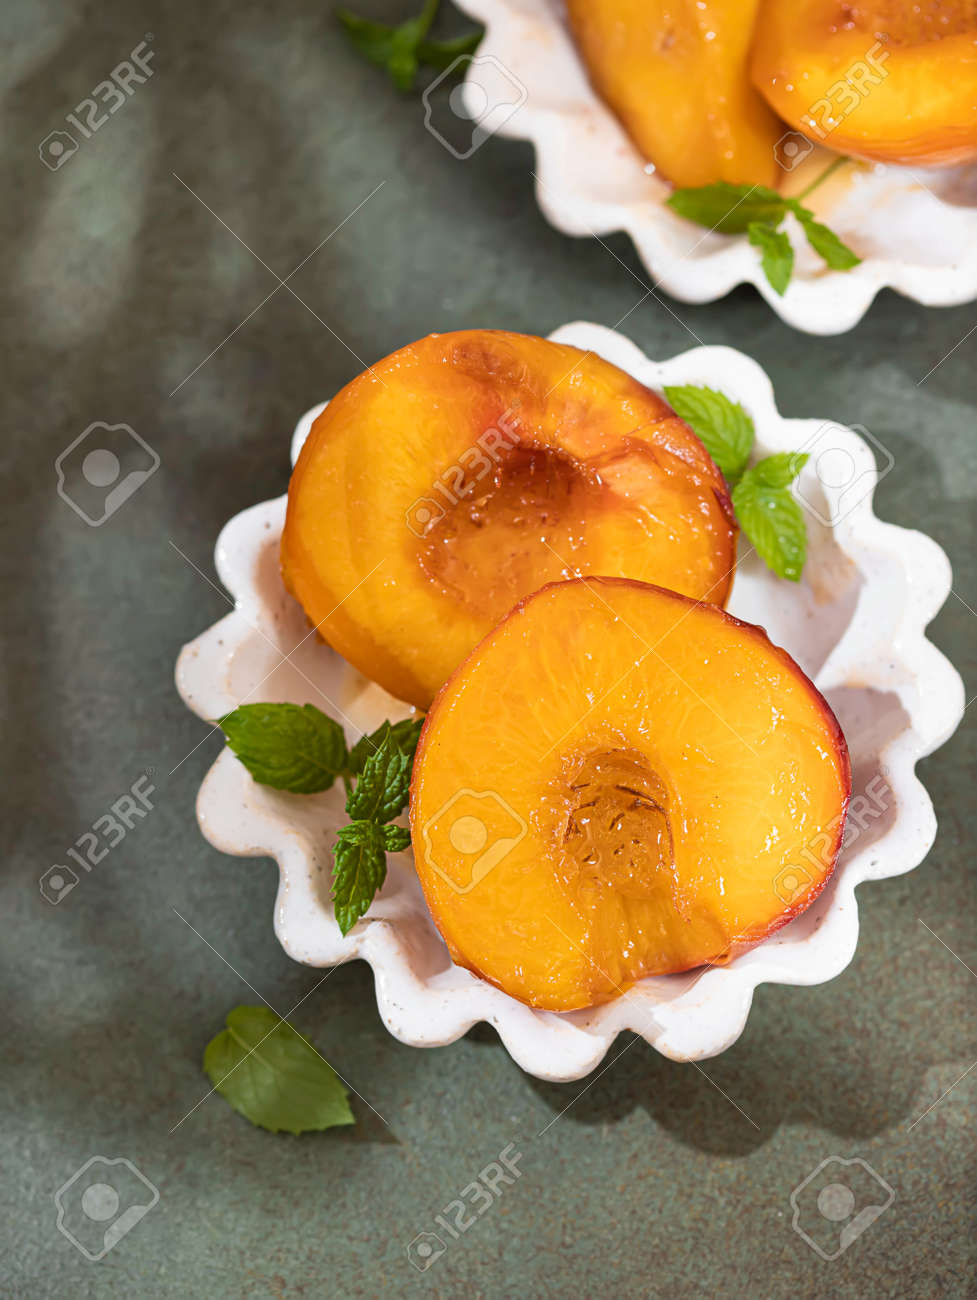 Caramelized peaches with honey, with mint leaves on a concrete background with shadows. Summer dessert. - 171666840